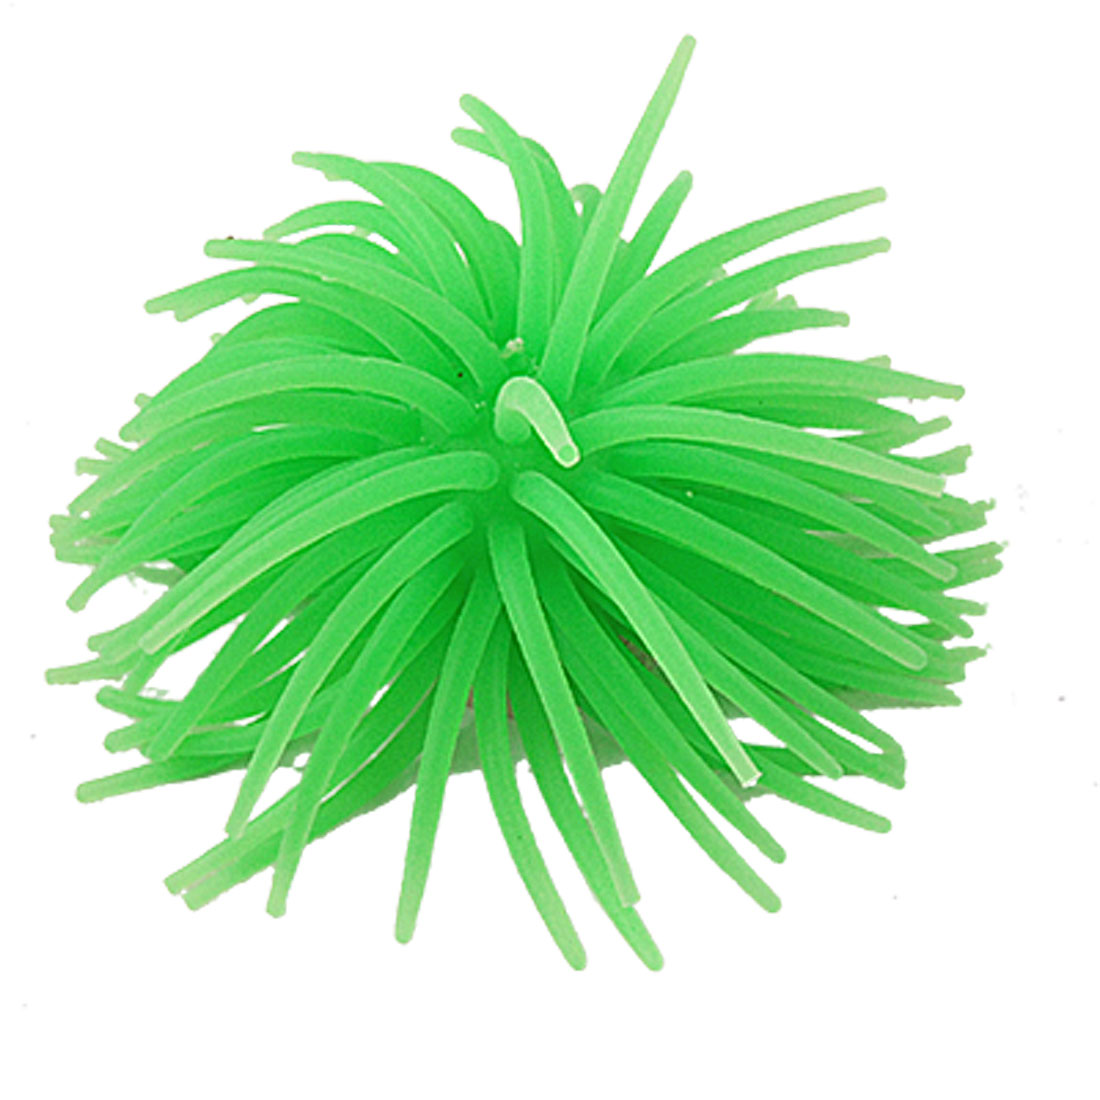 Ceramic Base Silicone Manmade Coral Green Ornament for Fish Tank